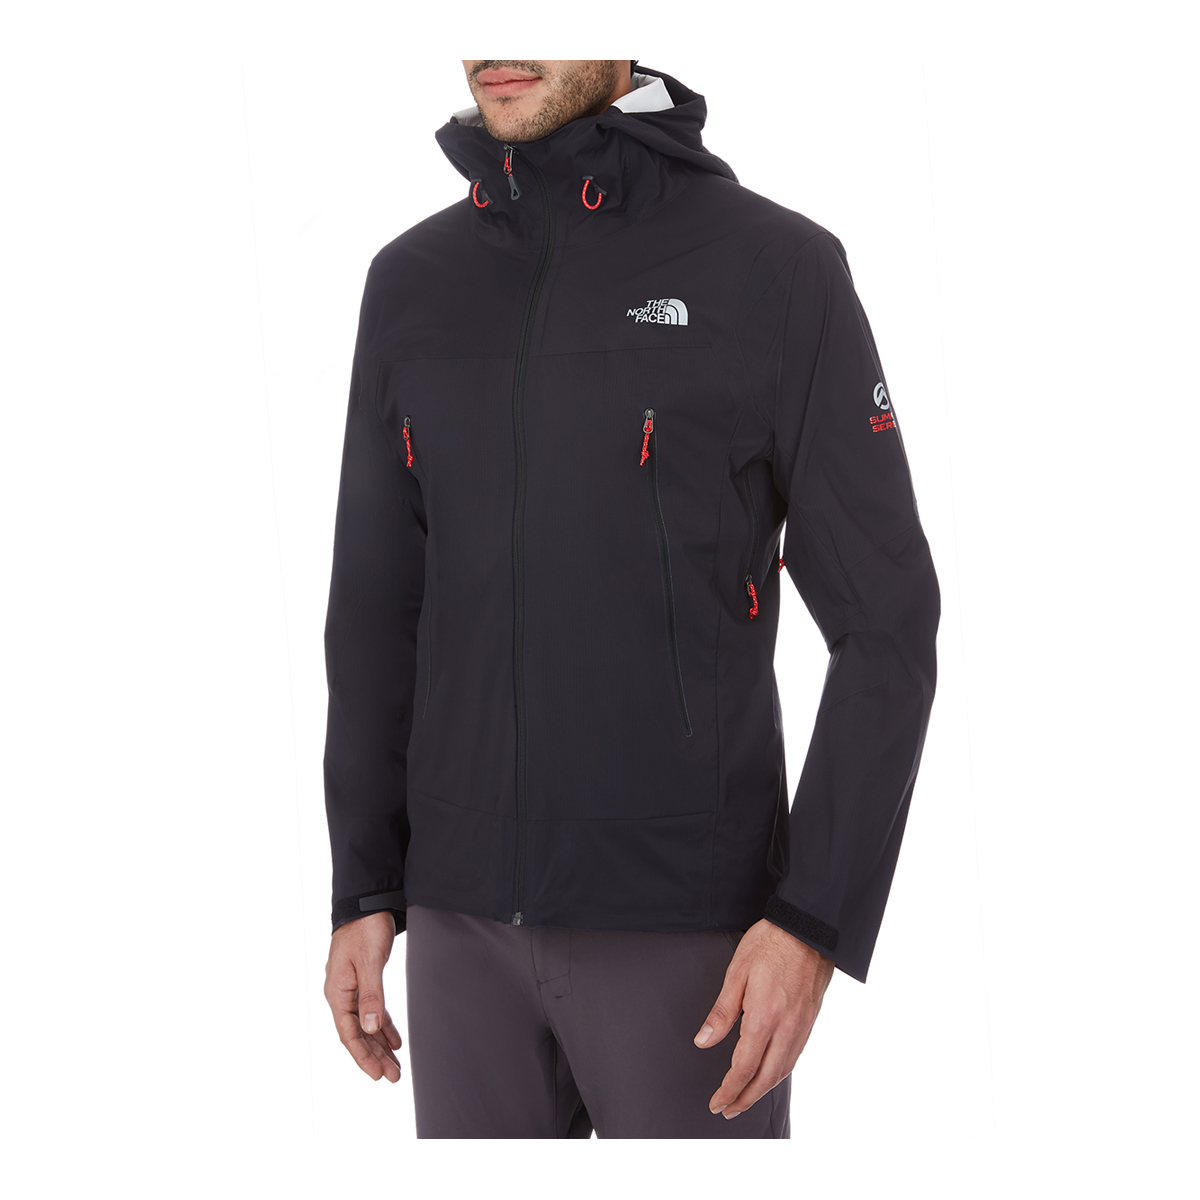 bb3854ac0f The North Face Diad Jacket 2015 | Technical Jackets | EpicTV Shop